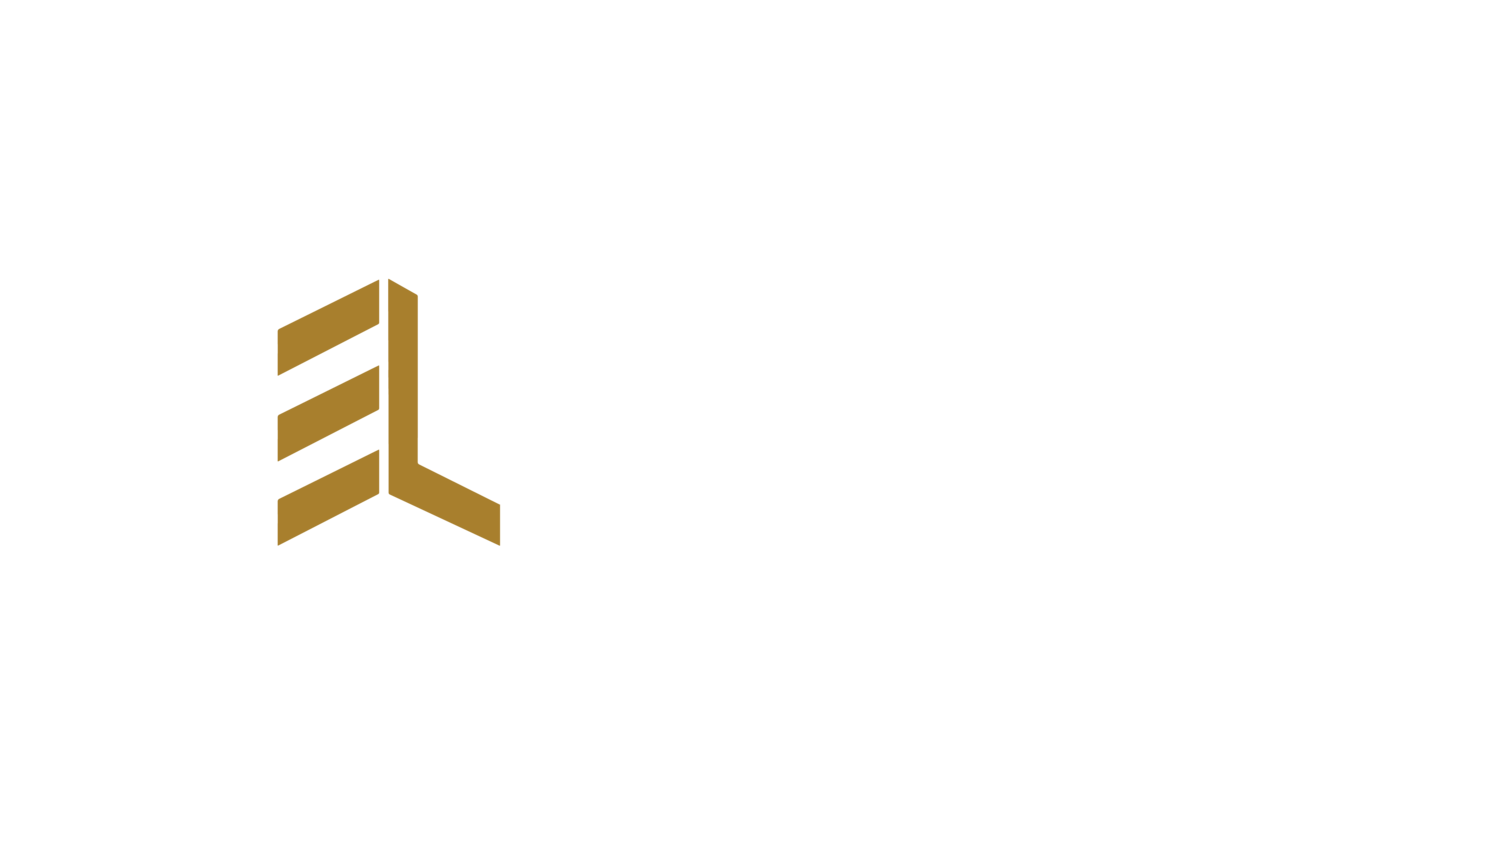 Lyst Property Group - Cape Town